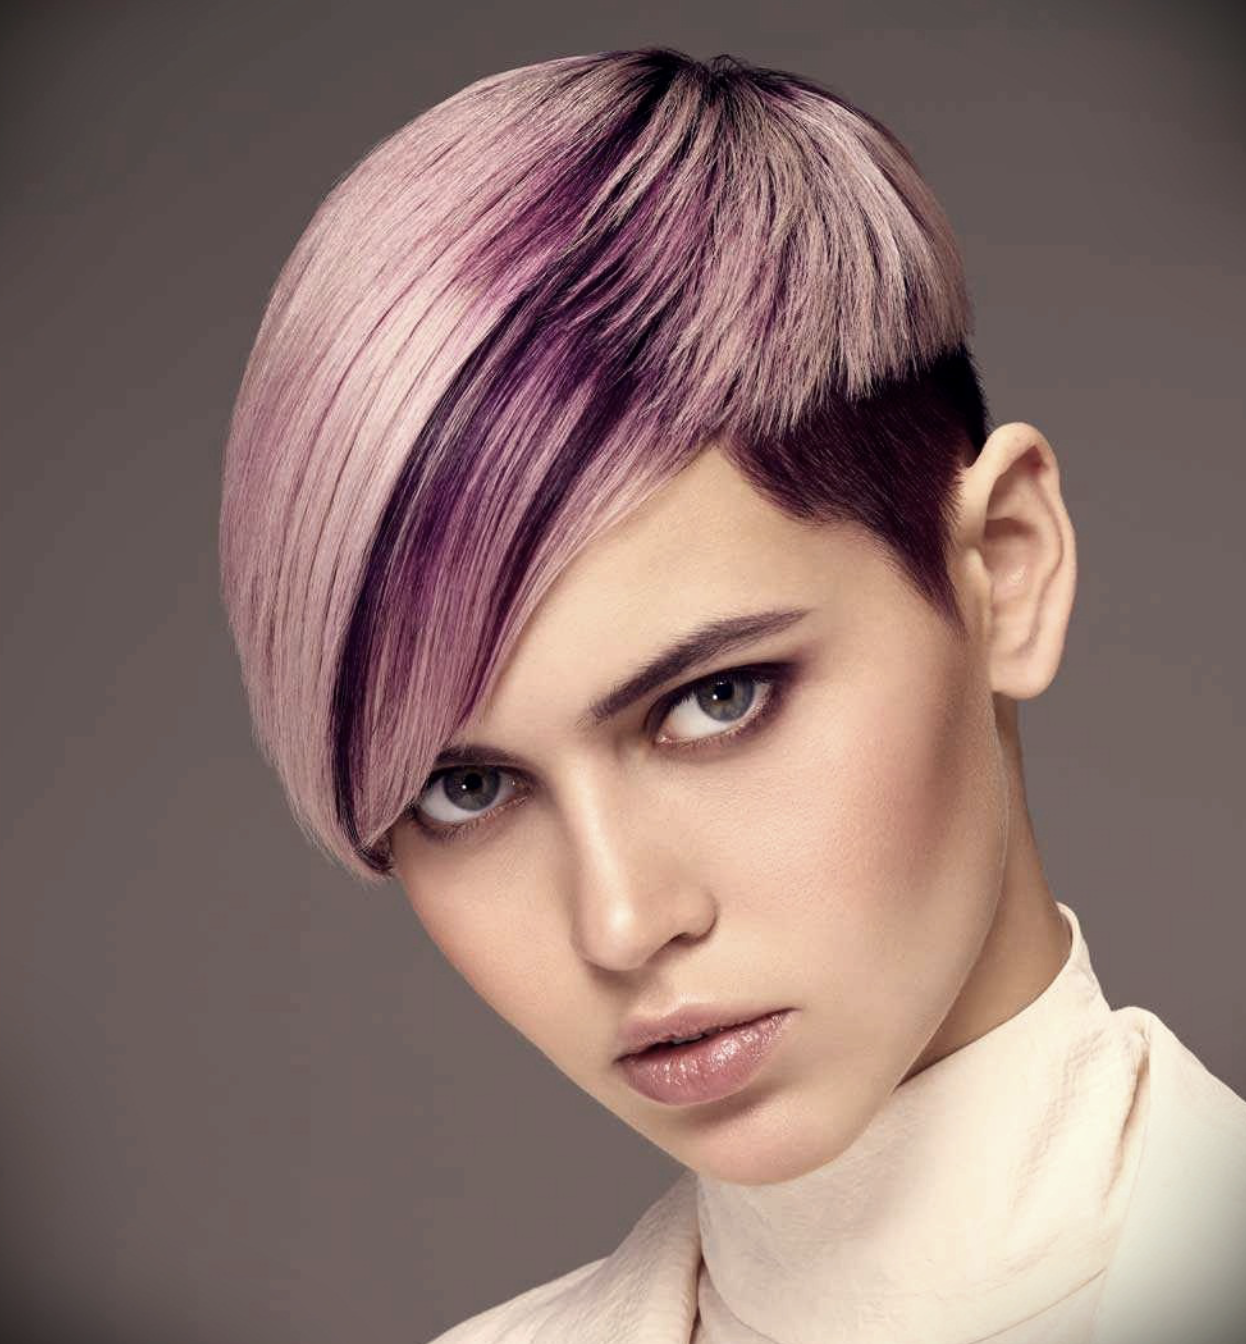 Hair Color Trends 2019: Hair Color Trends That Will Be Huge In 2019 For Women